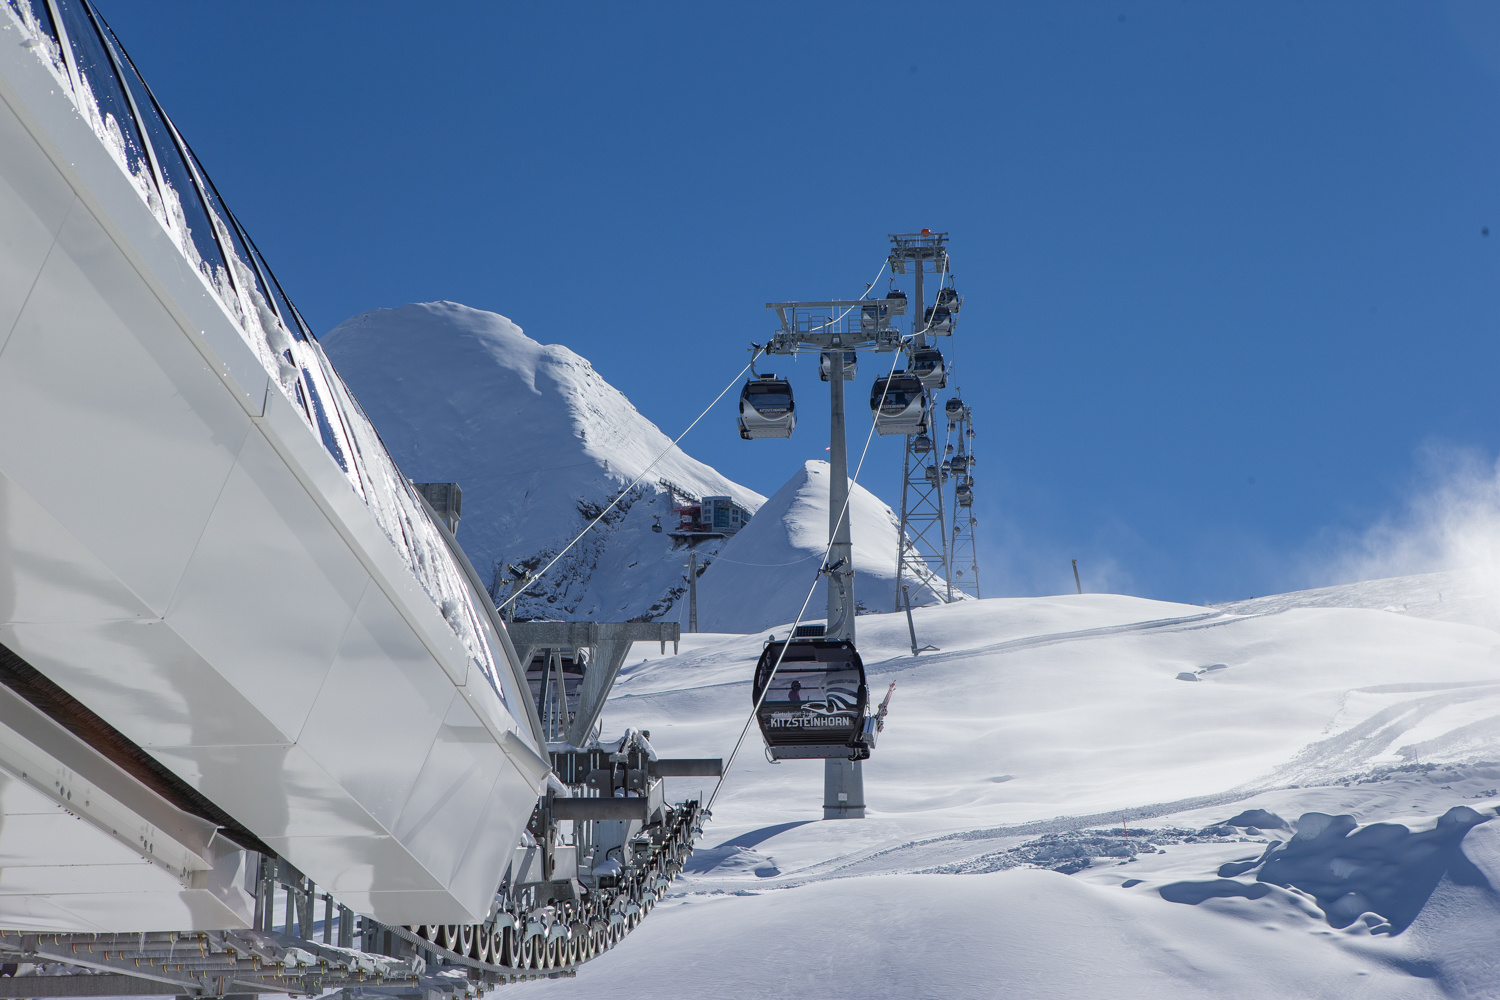 Privat - Snowboard, 6 Tage/Days, 4h